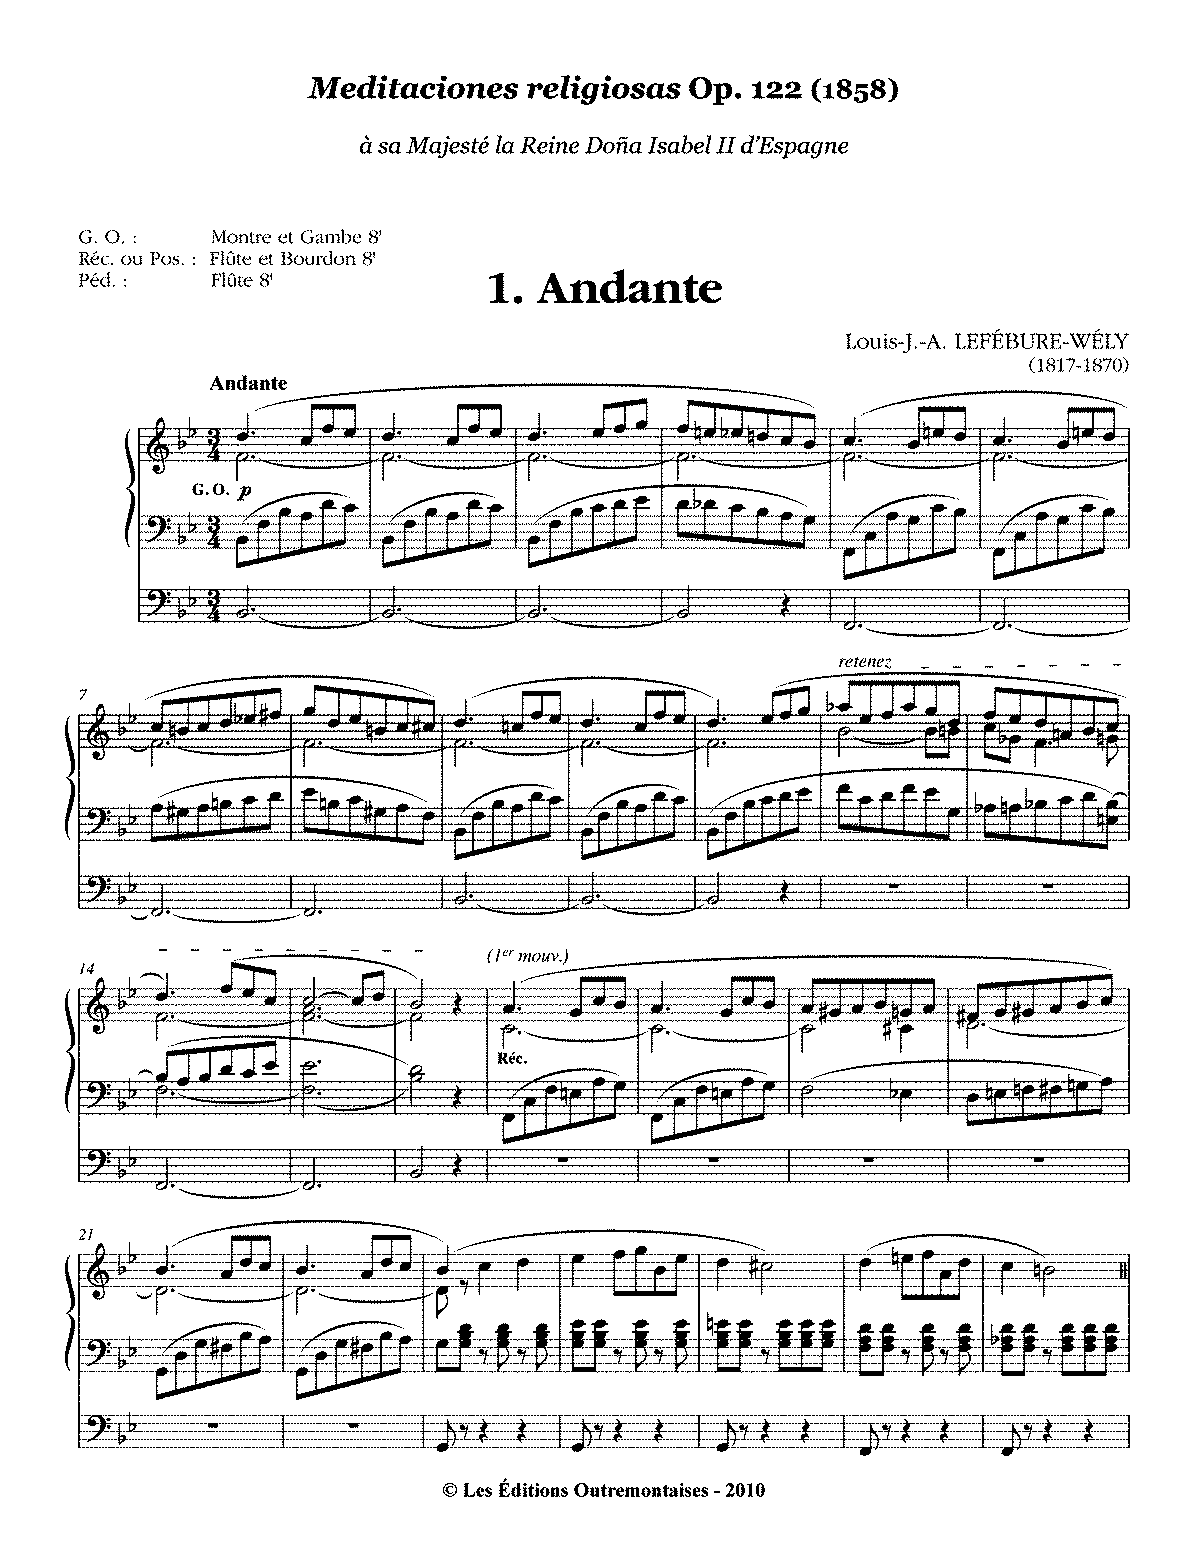 WIMA.346b-Lefebure-Wely Op.122 01 Andante.pdf